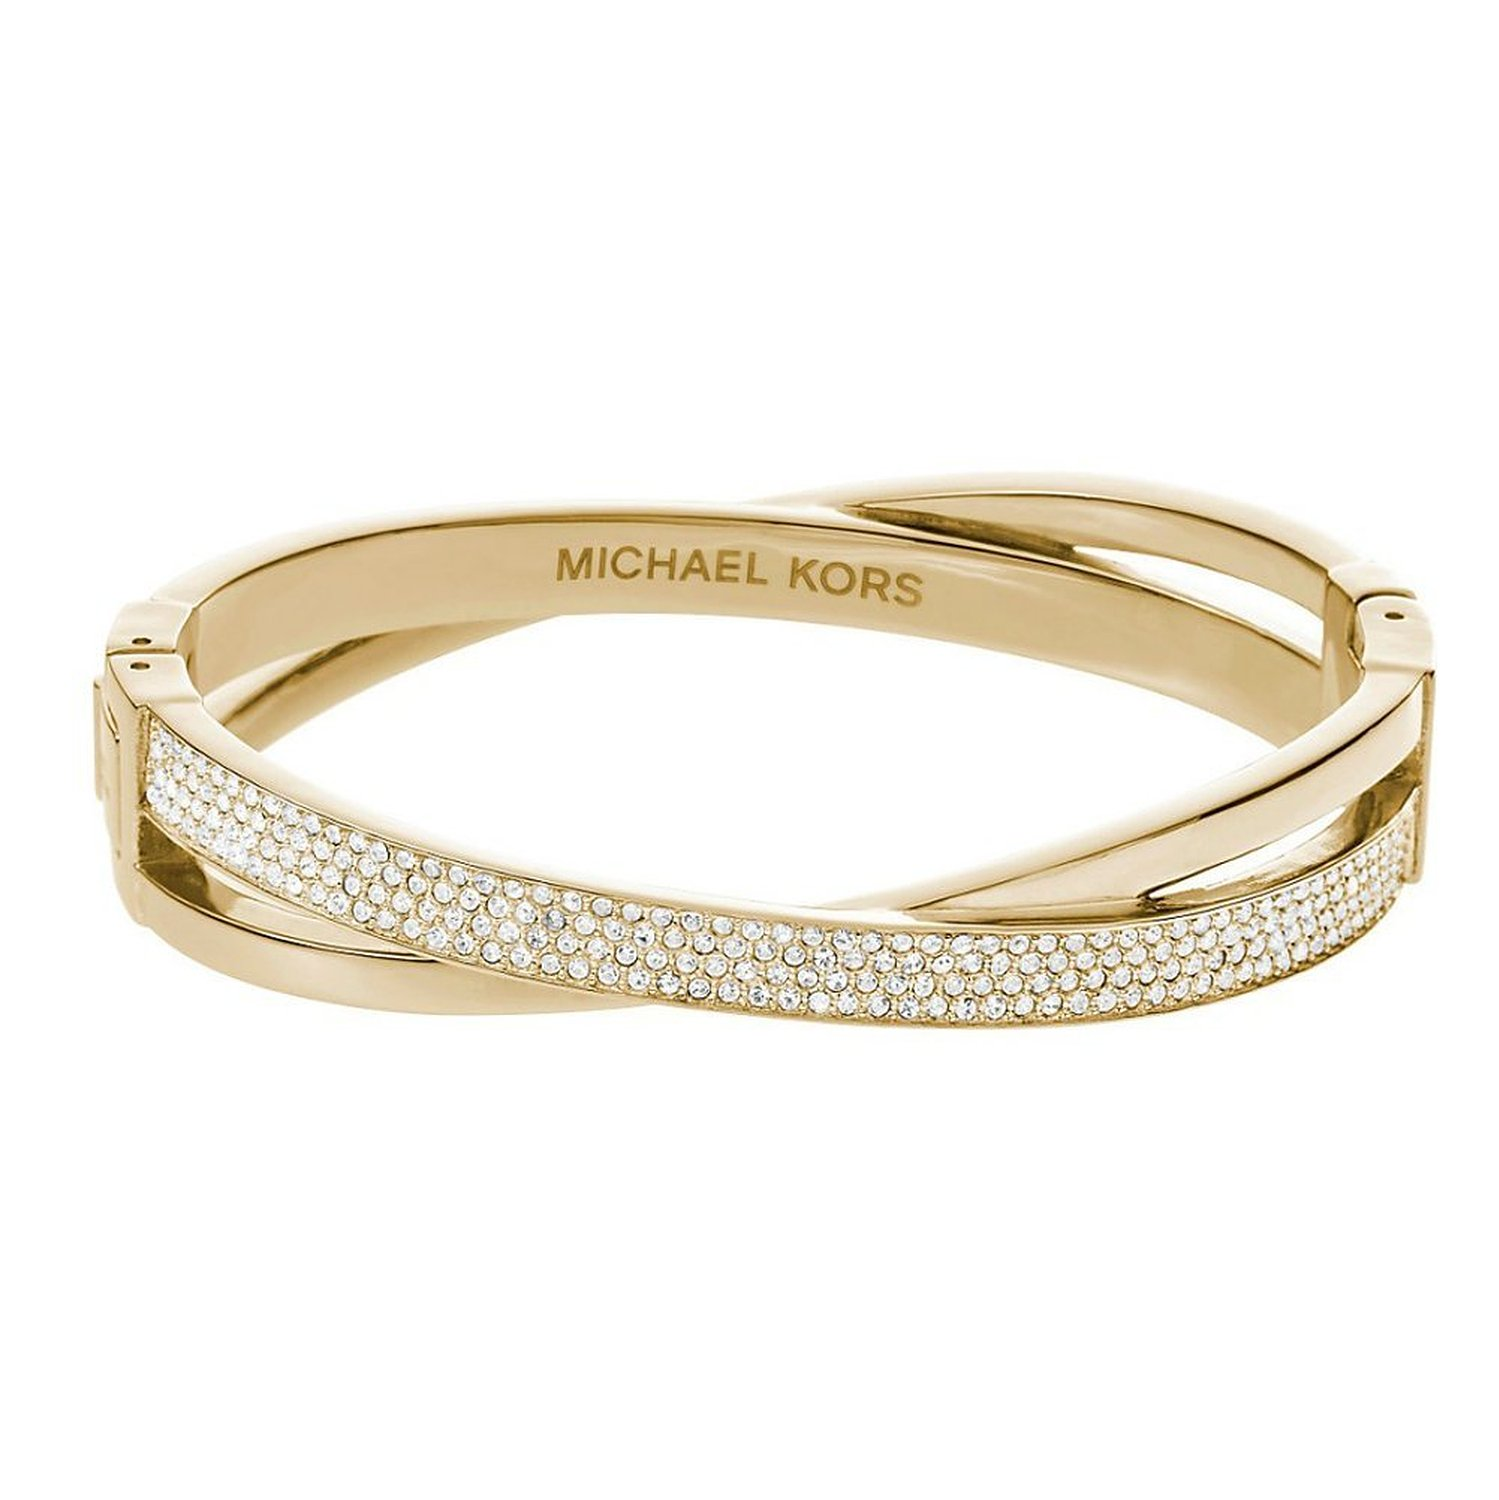 Amazon.com: mkj2847 criss cross bangle bracelet gold tone crystal pave: jewelry